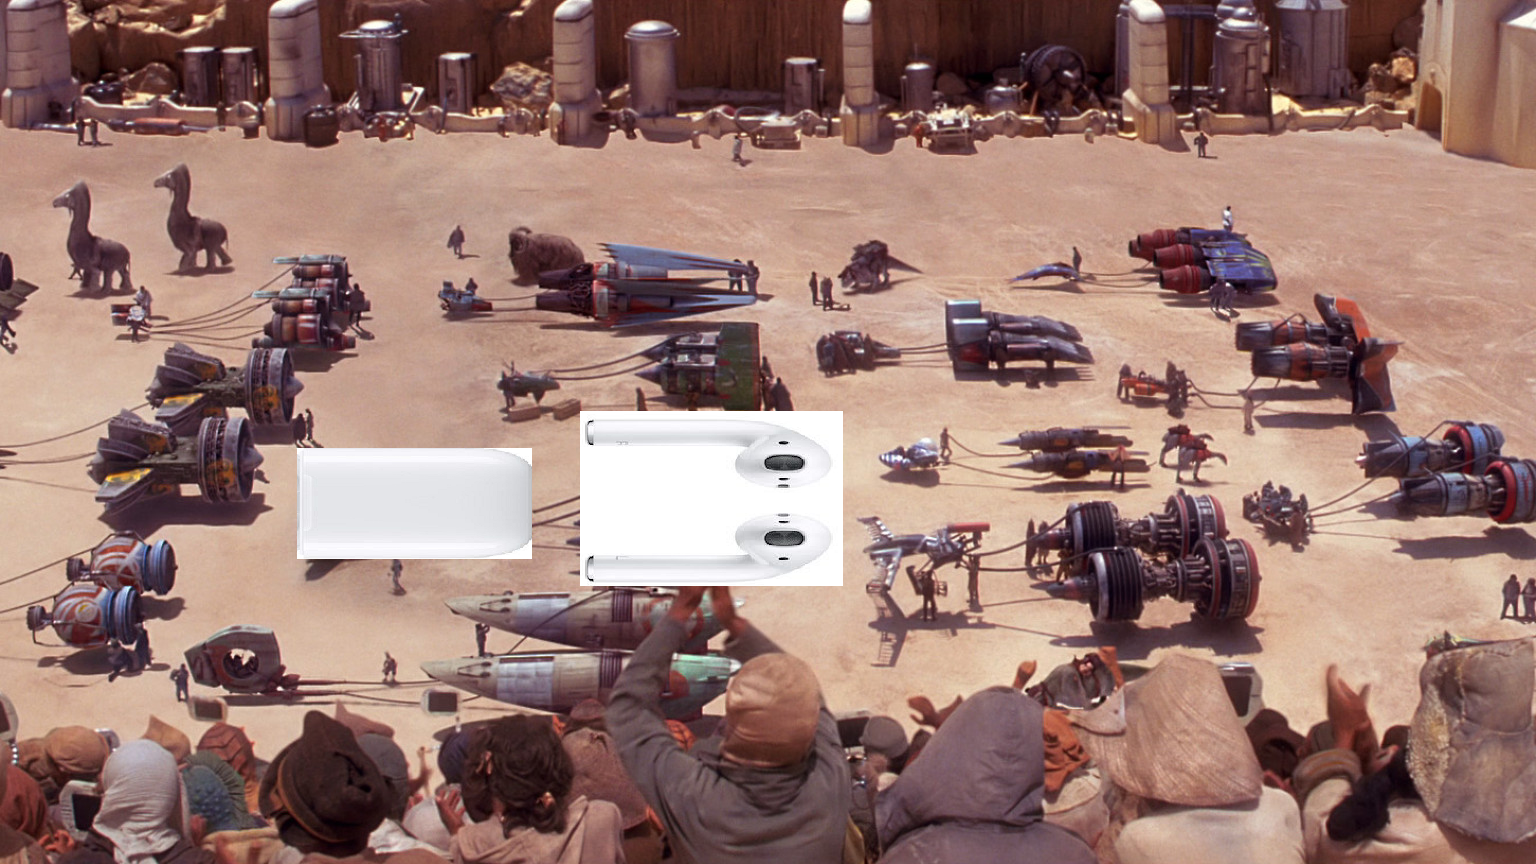 Now this is apple podracing